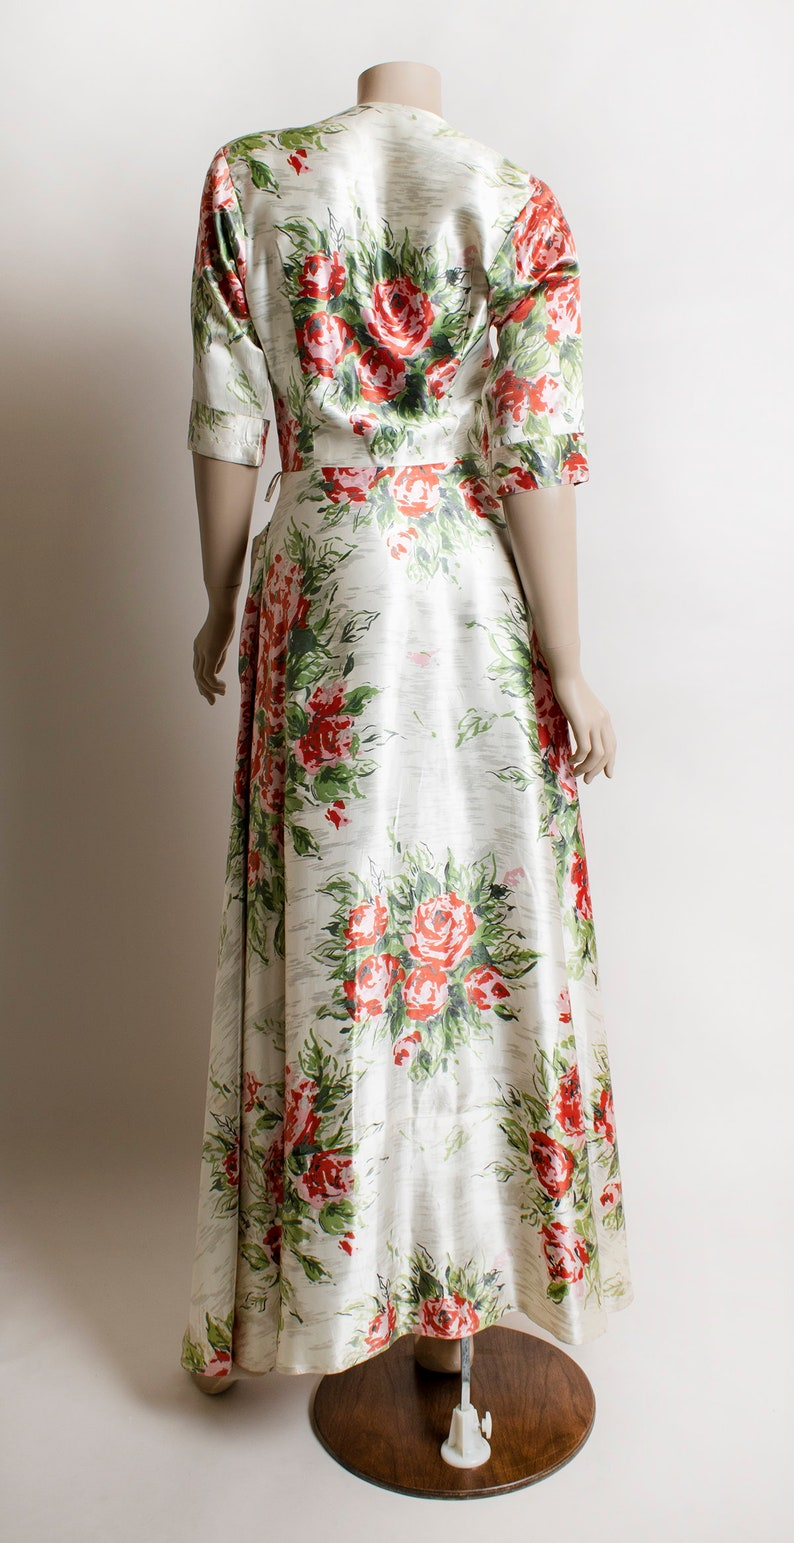 Pink White Small Vintage 1940s Dressing Gown Front Zip and Pockets Cabbage Rose Print Satin 40s Maxi Floor Length Dress